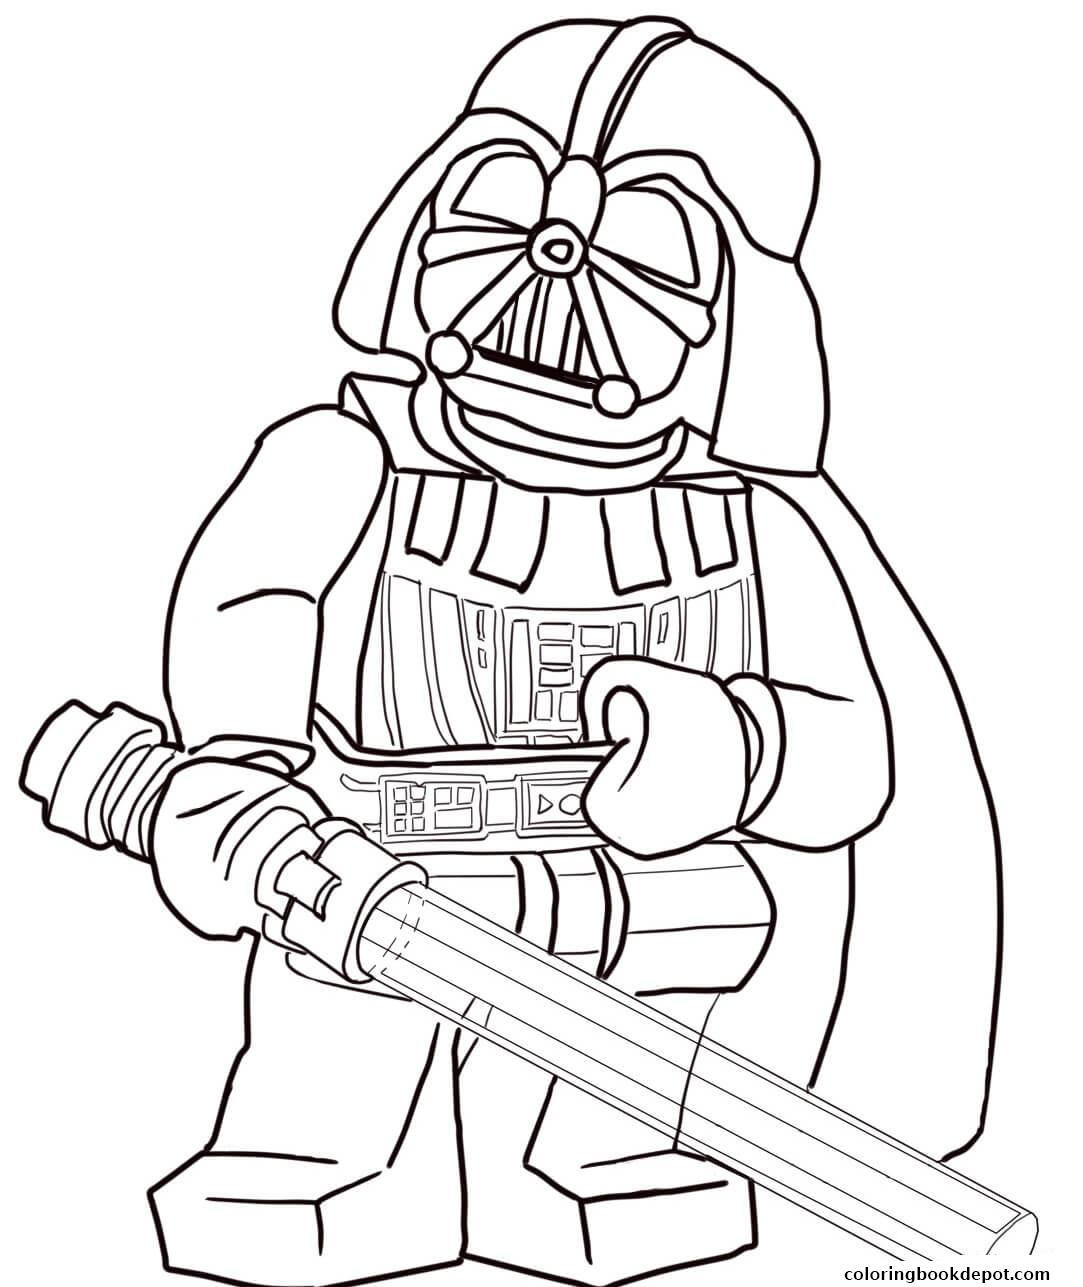 1083x1287 Lego Star Wars Darth Vader Coloring Pages